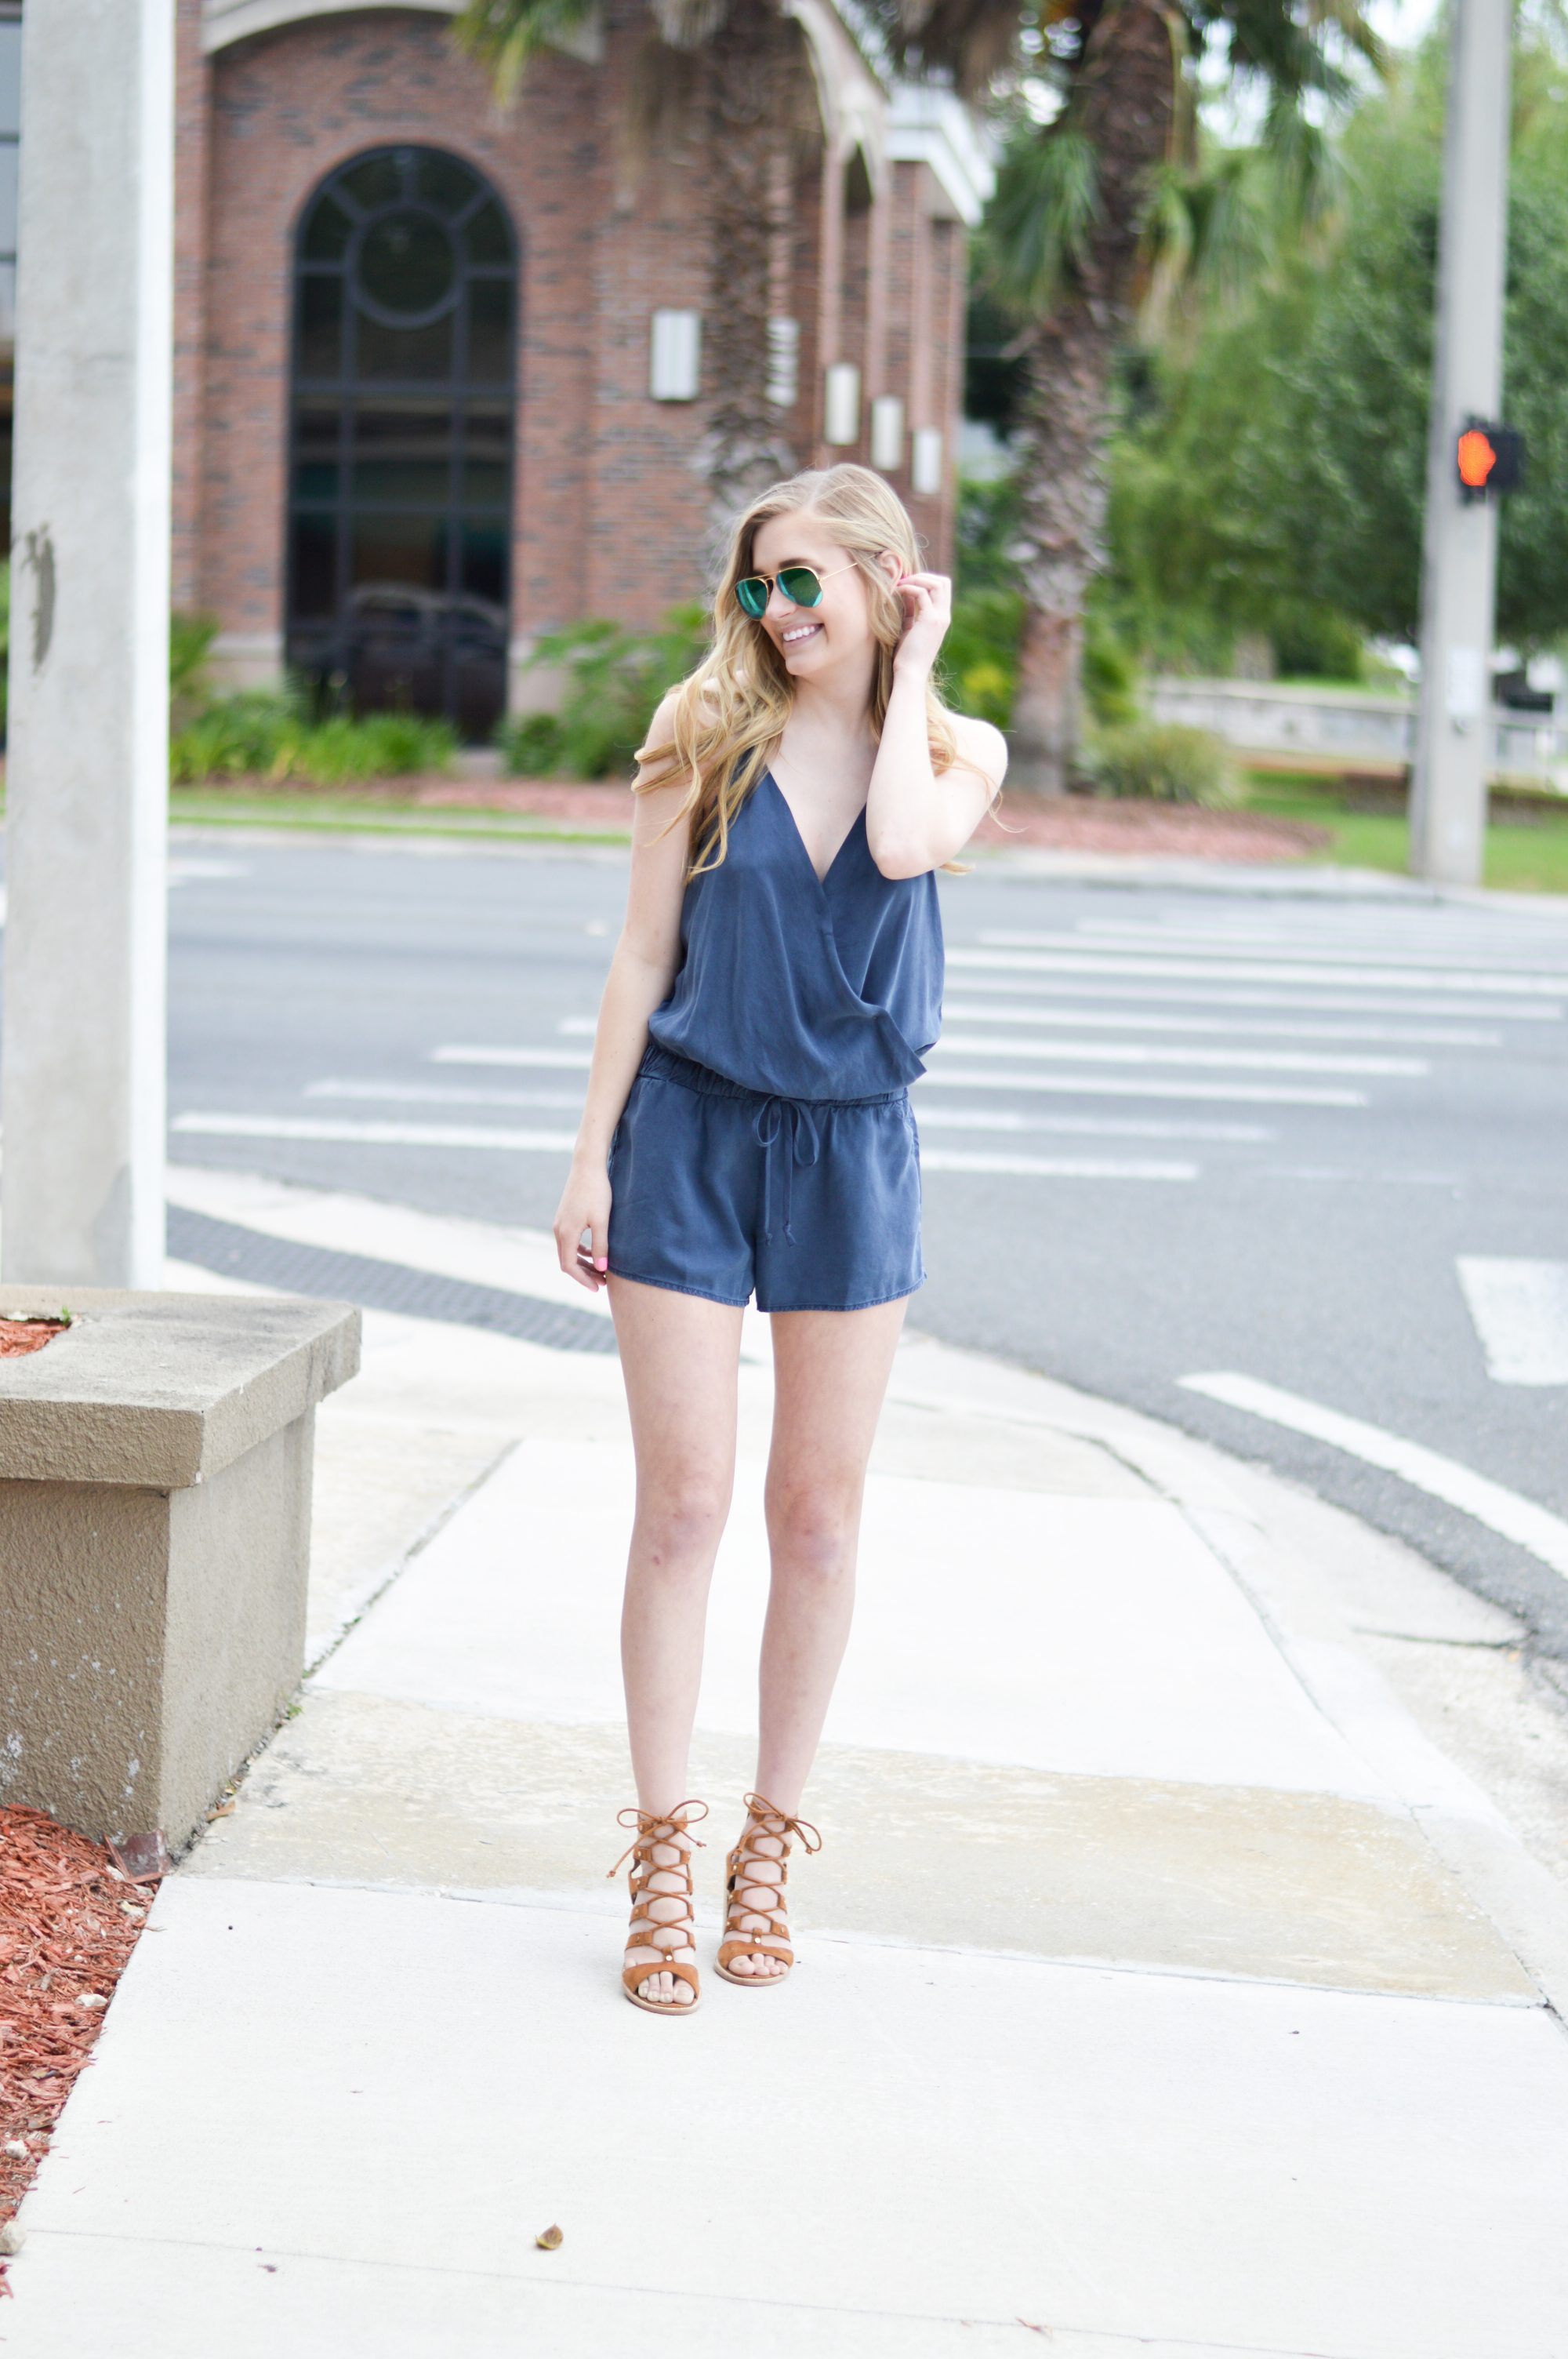 styelled blog, elle elisabeth, bella dahl, romper, the lost society, ray ban, tie dye, 7 for all mankind, 7 jeans, summer style, summer trends, style blogger, fashion blogger, dolce vita - 01